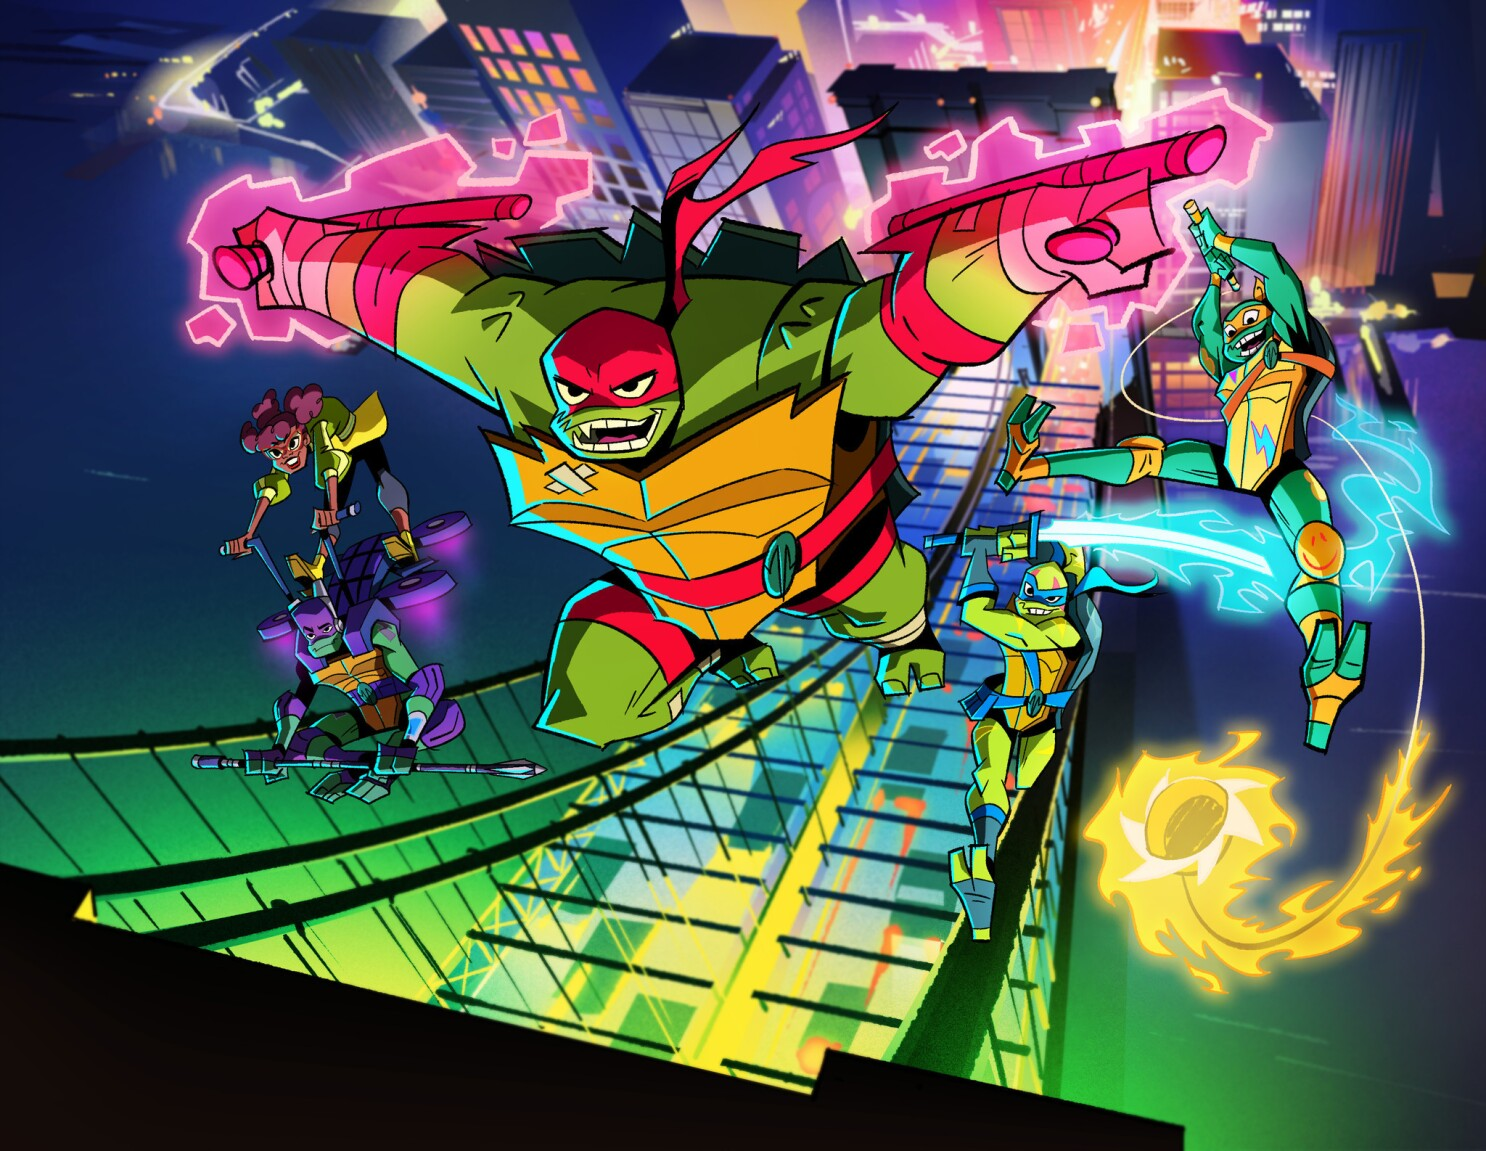 Get A First Look At The New Rise Of The Teenage Mutant Ninja